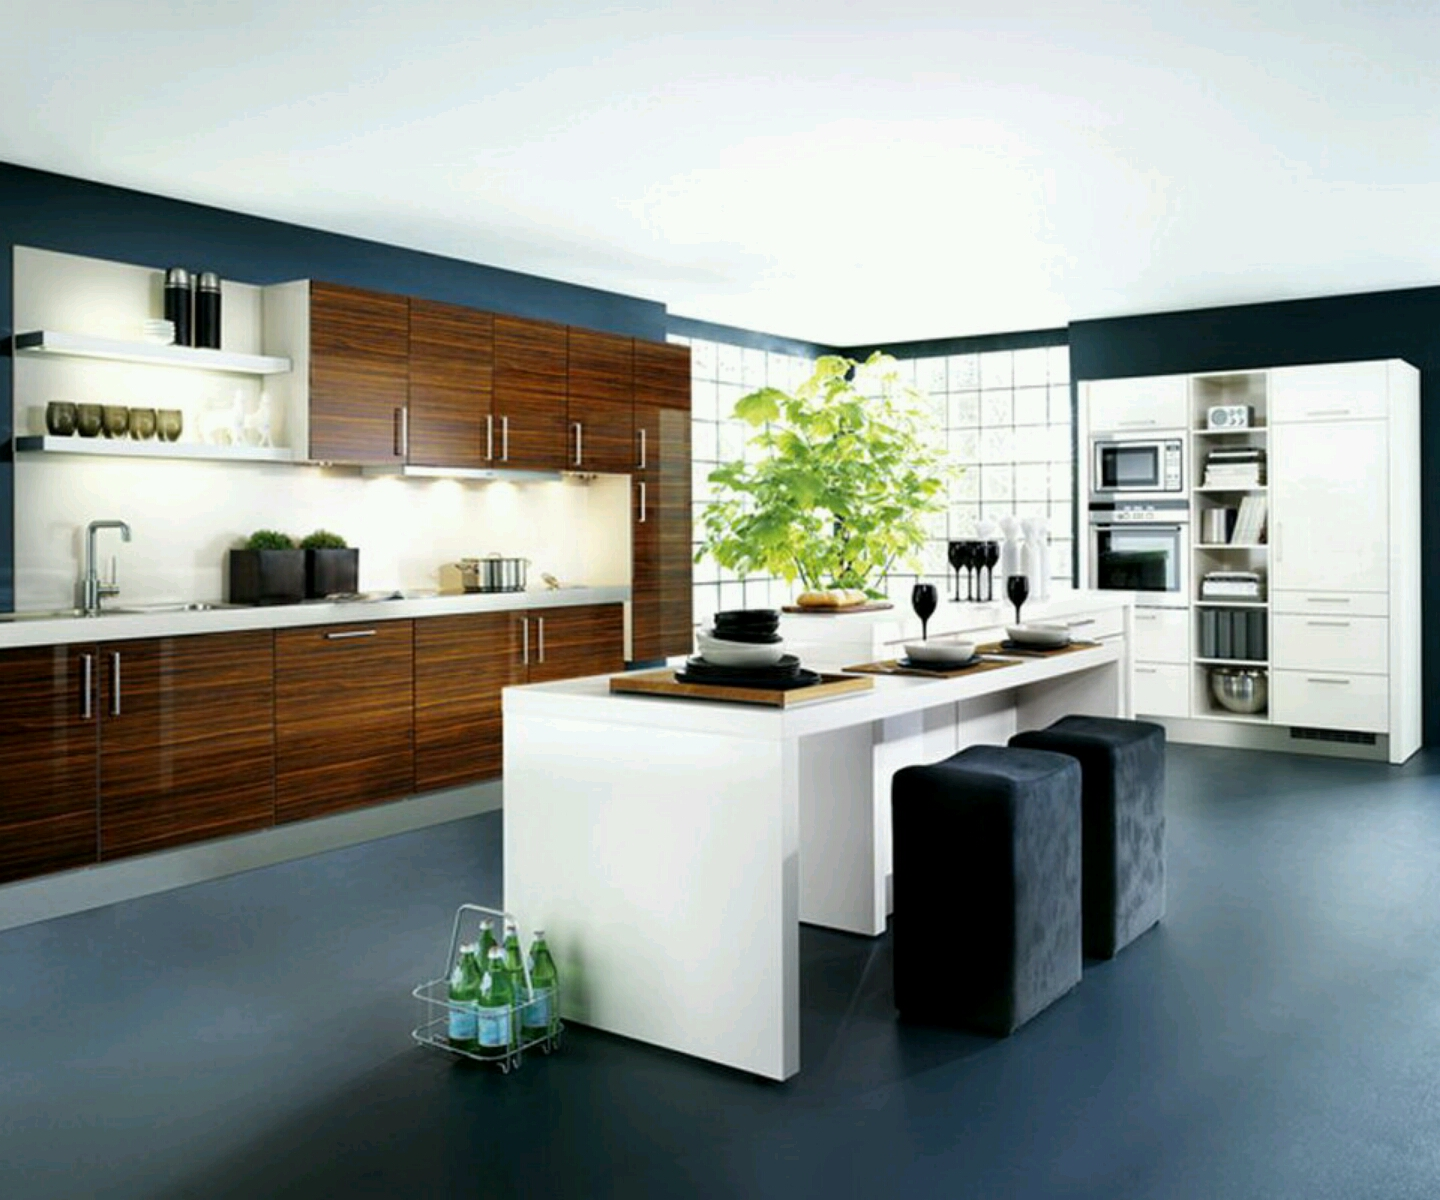 New home designs latest.: Kitchen cabinets designs modern homes.